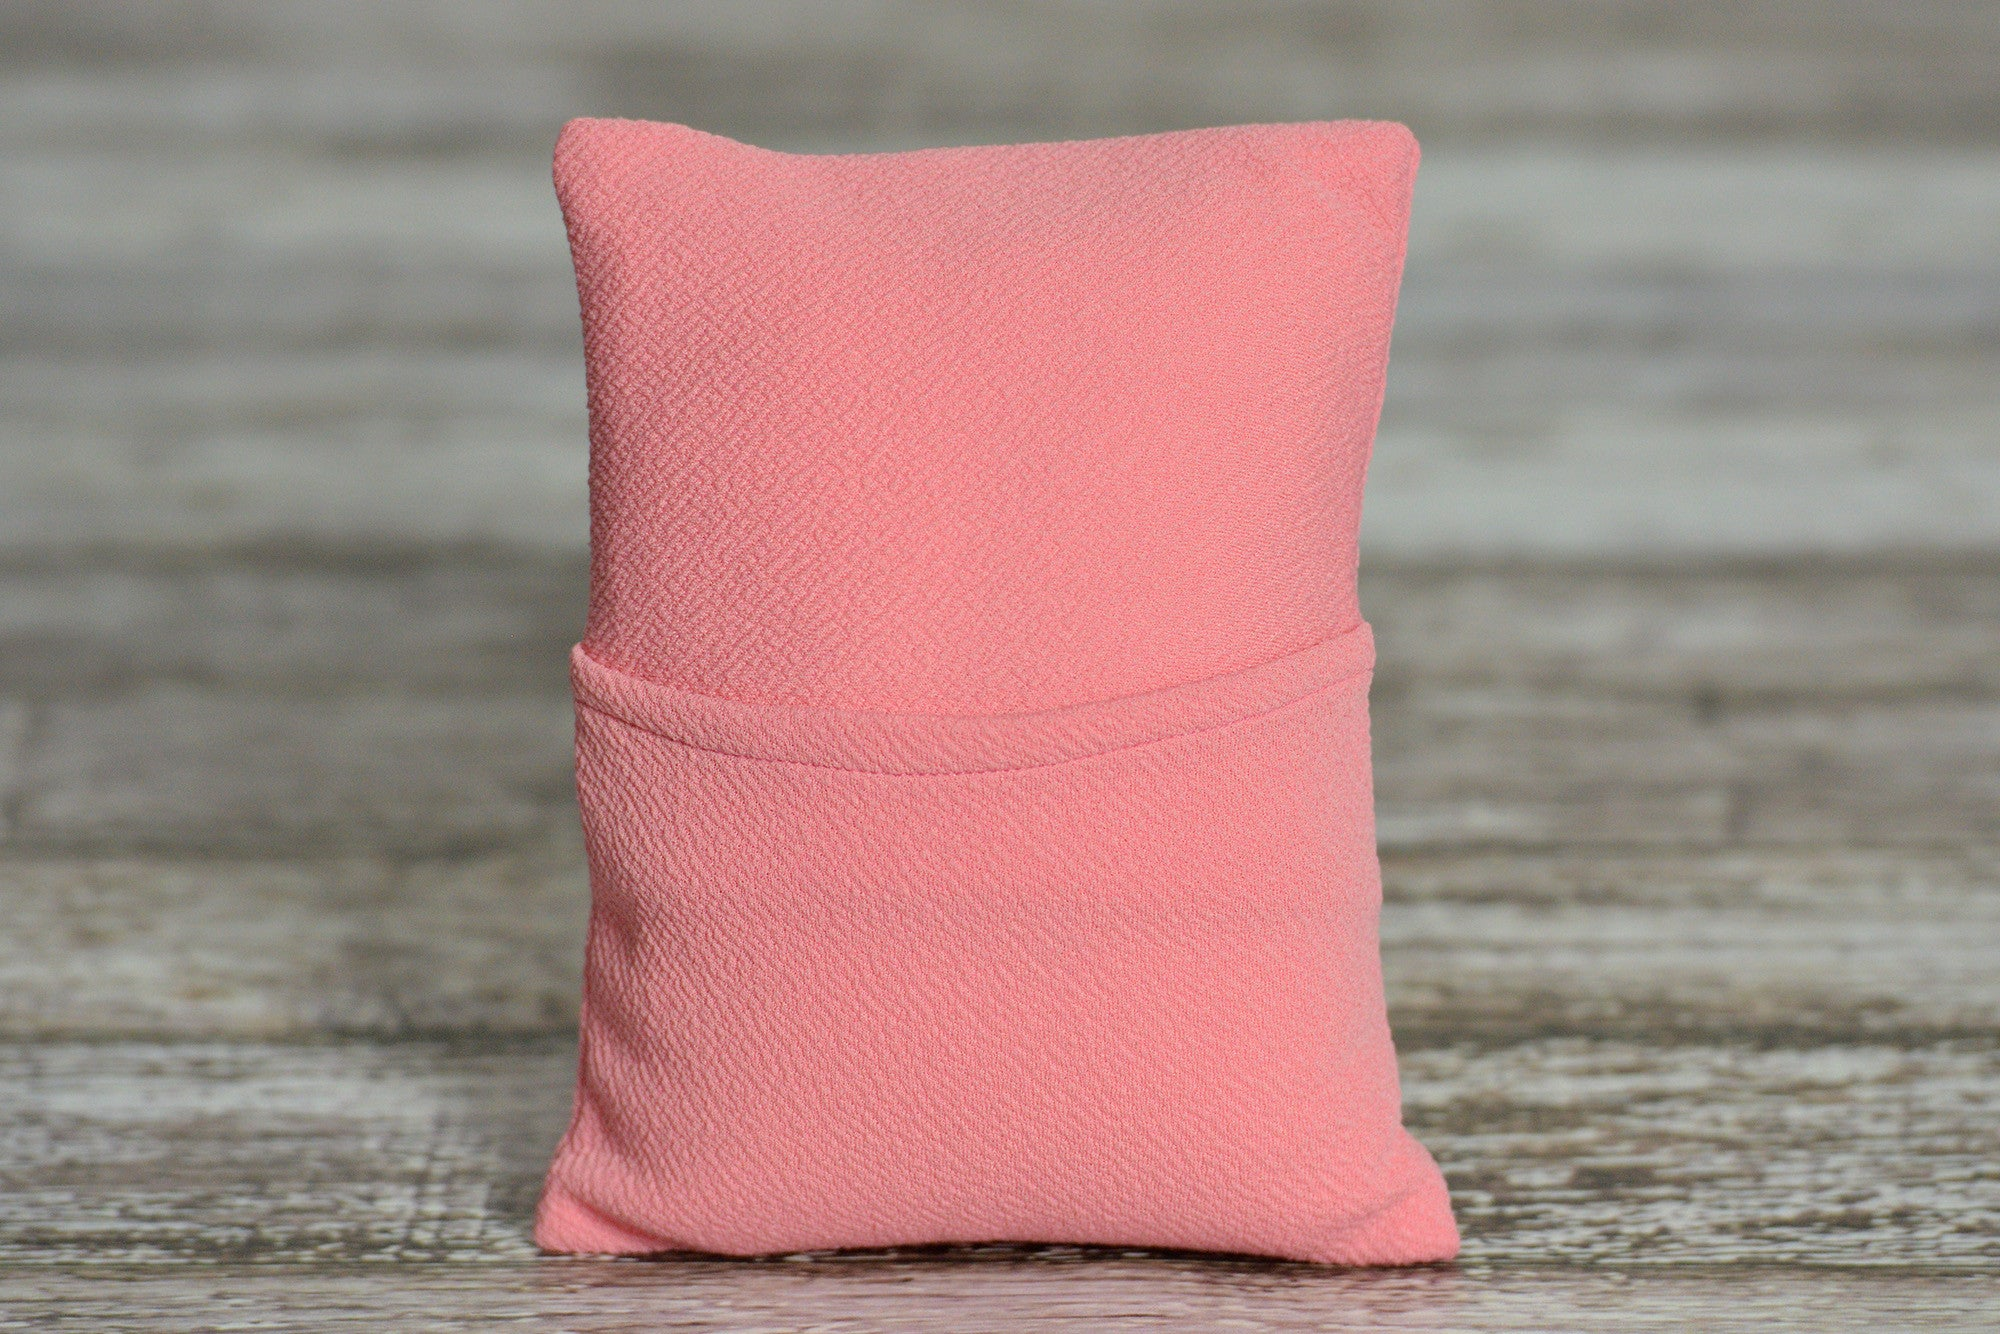 Mini Pillow with Cover - Textured - Rose-Newborn Photography Props